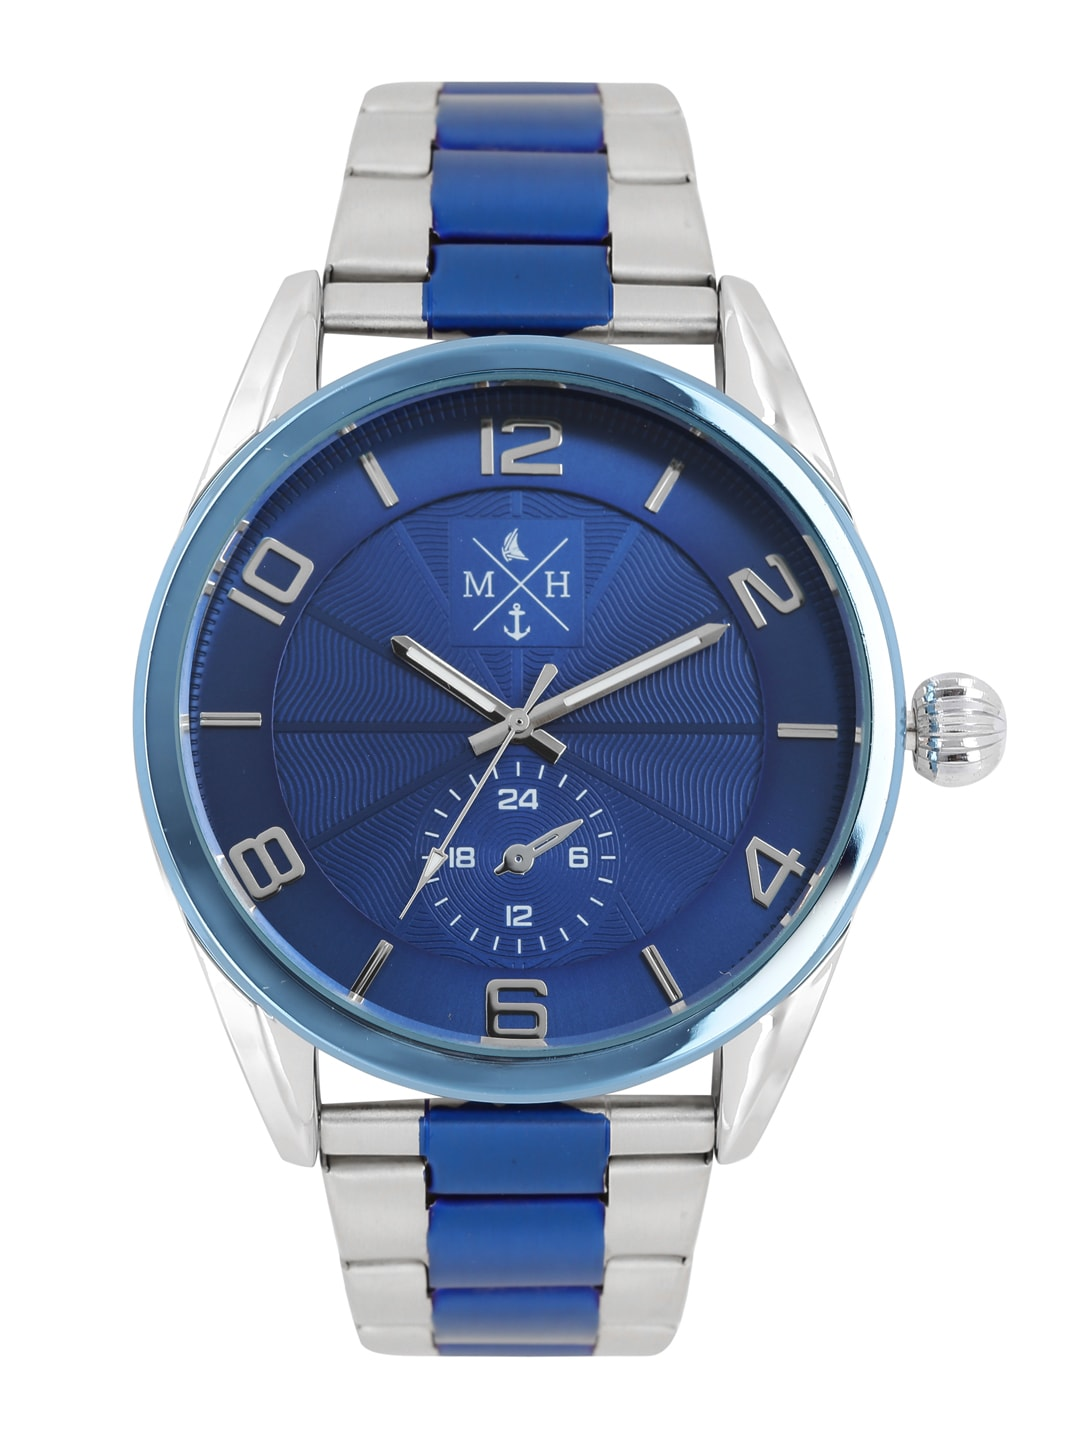 Mast & Harbour Men Blue Analogue Watch MFB-PN-HP-3914 image